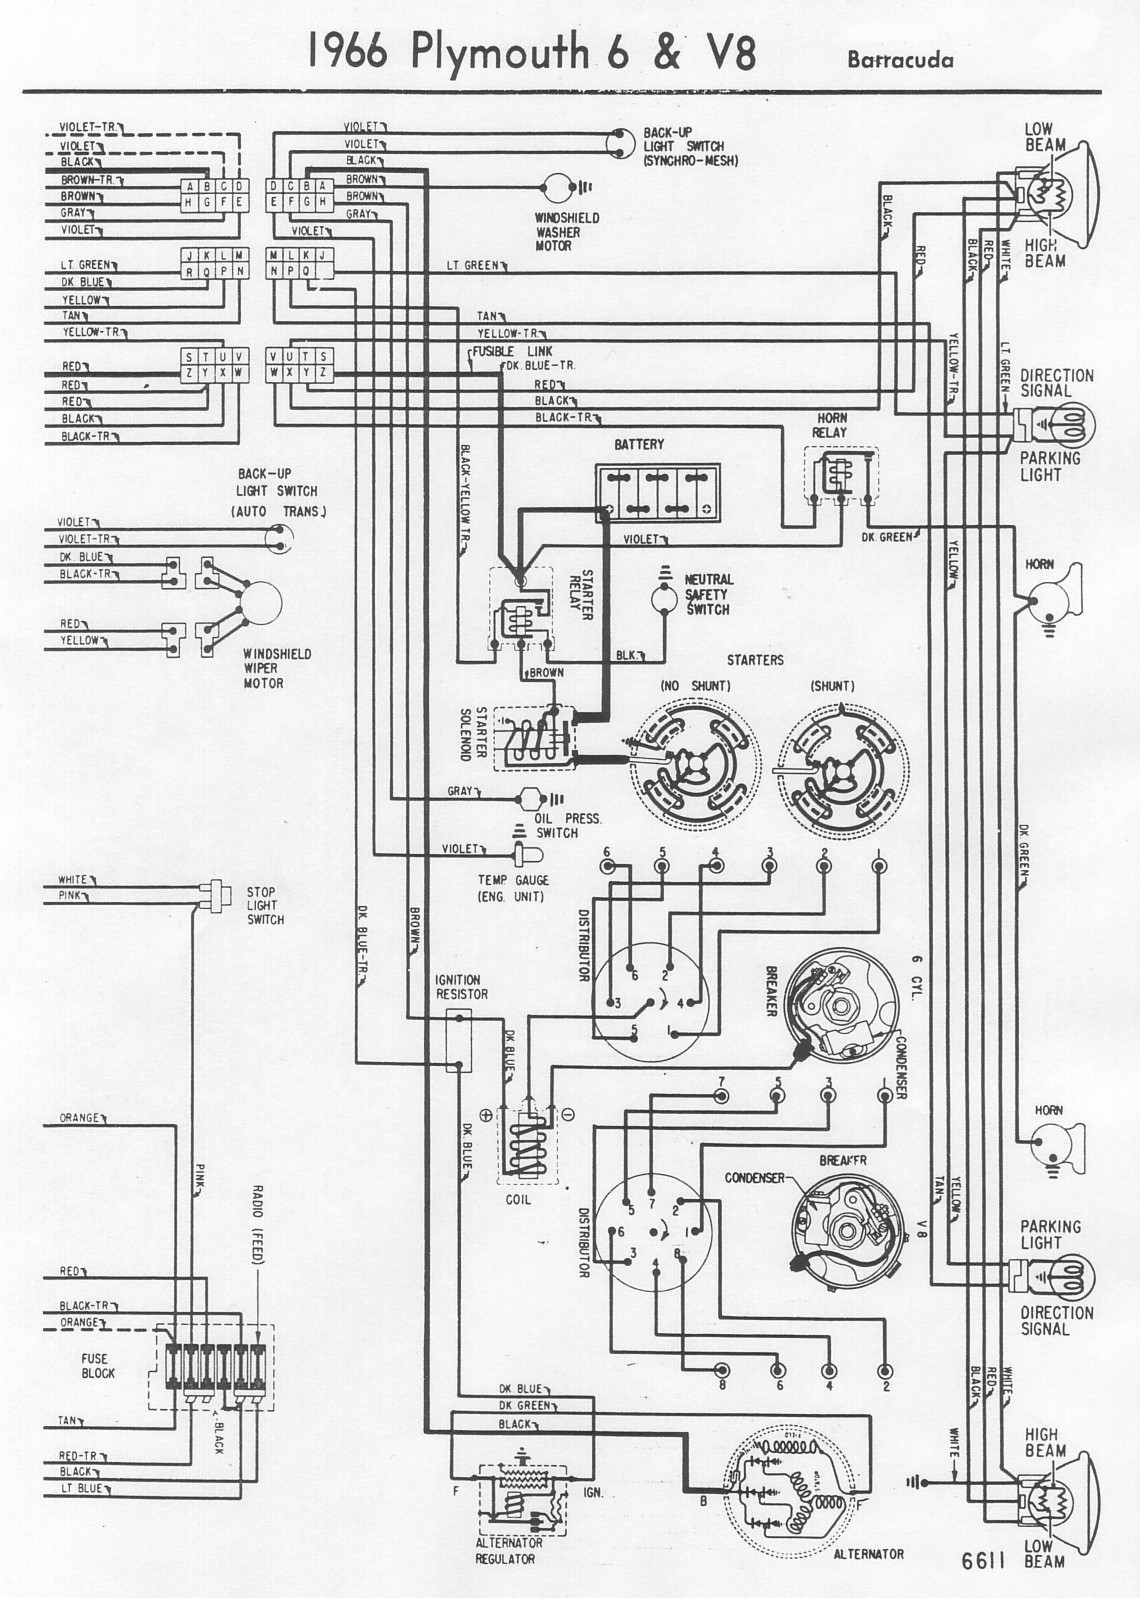 Basic Ignition Wiring Diagram 1964 Dodge Library 65 Gto Schematic 1965 Plymouth Valiant Opinions About U2022 1967 Pontiac